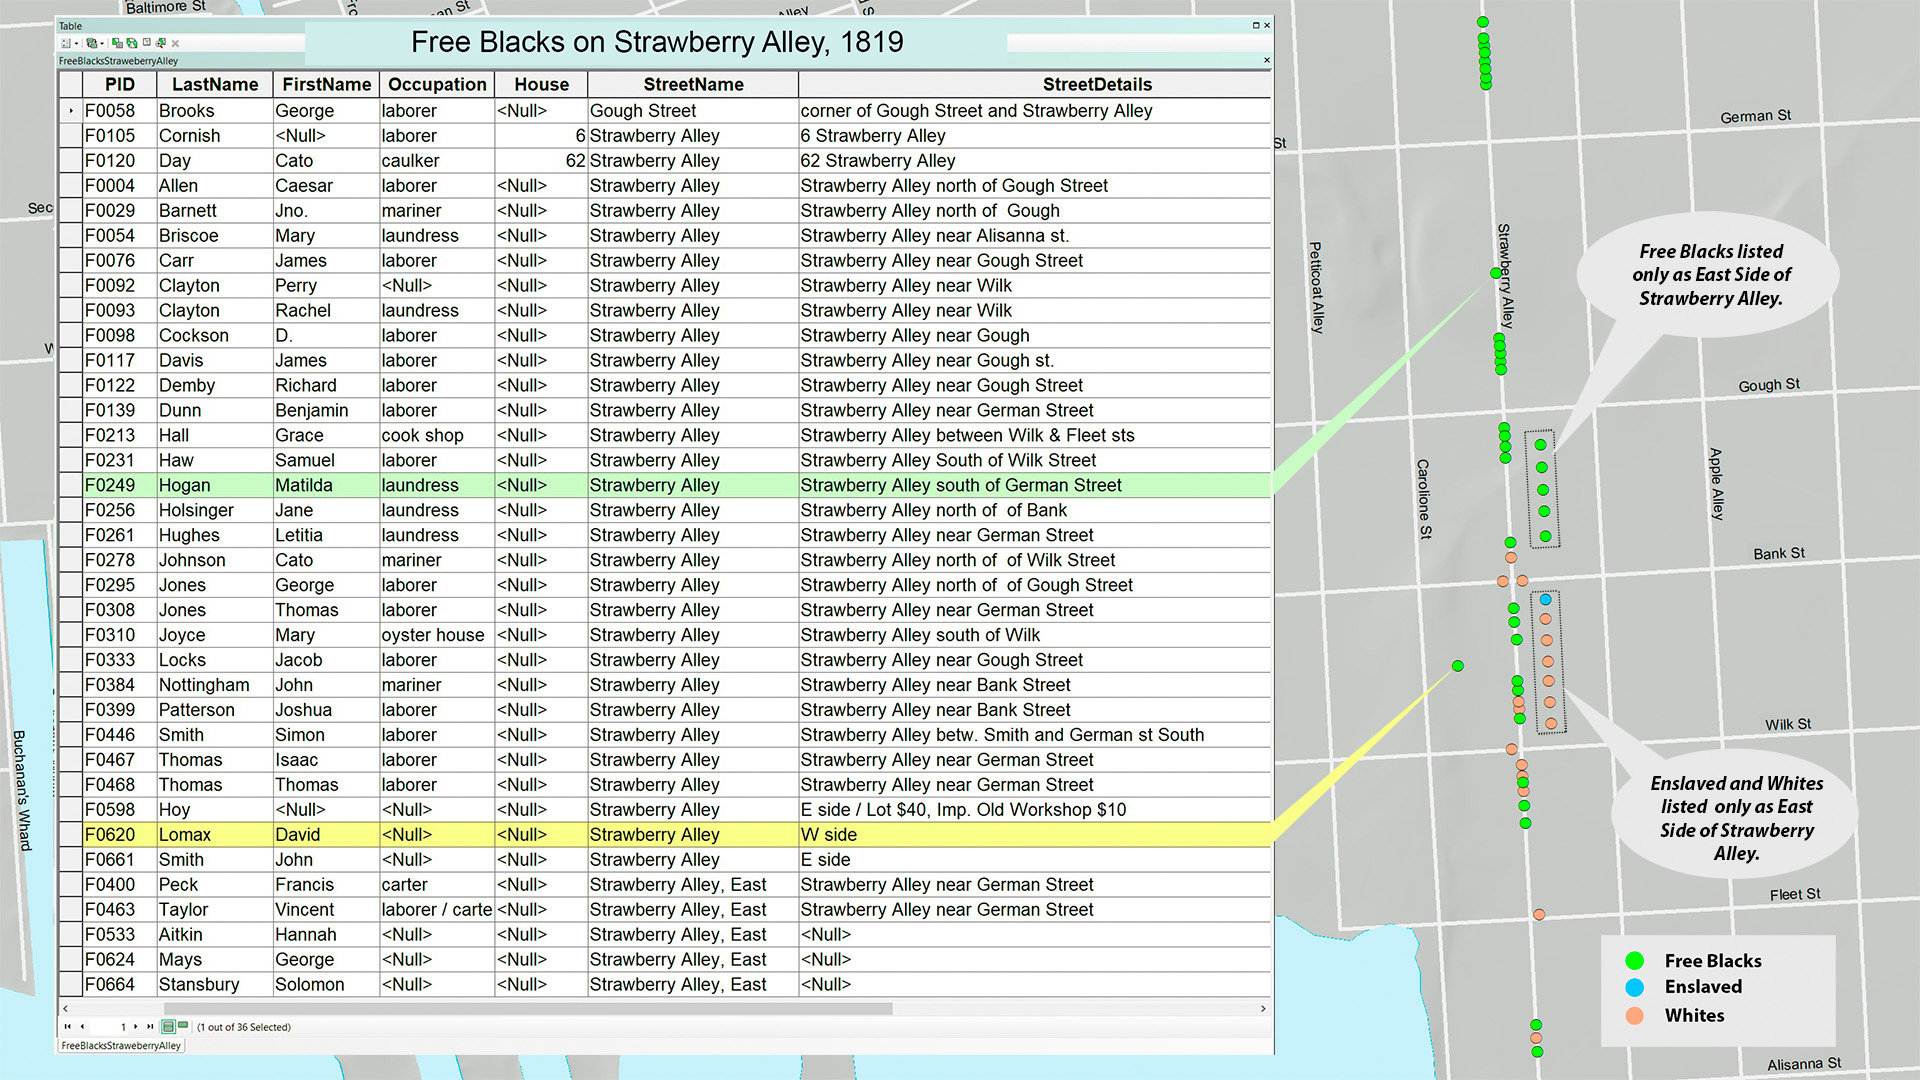 This visualization shows where people lived along Strawberry Alley.